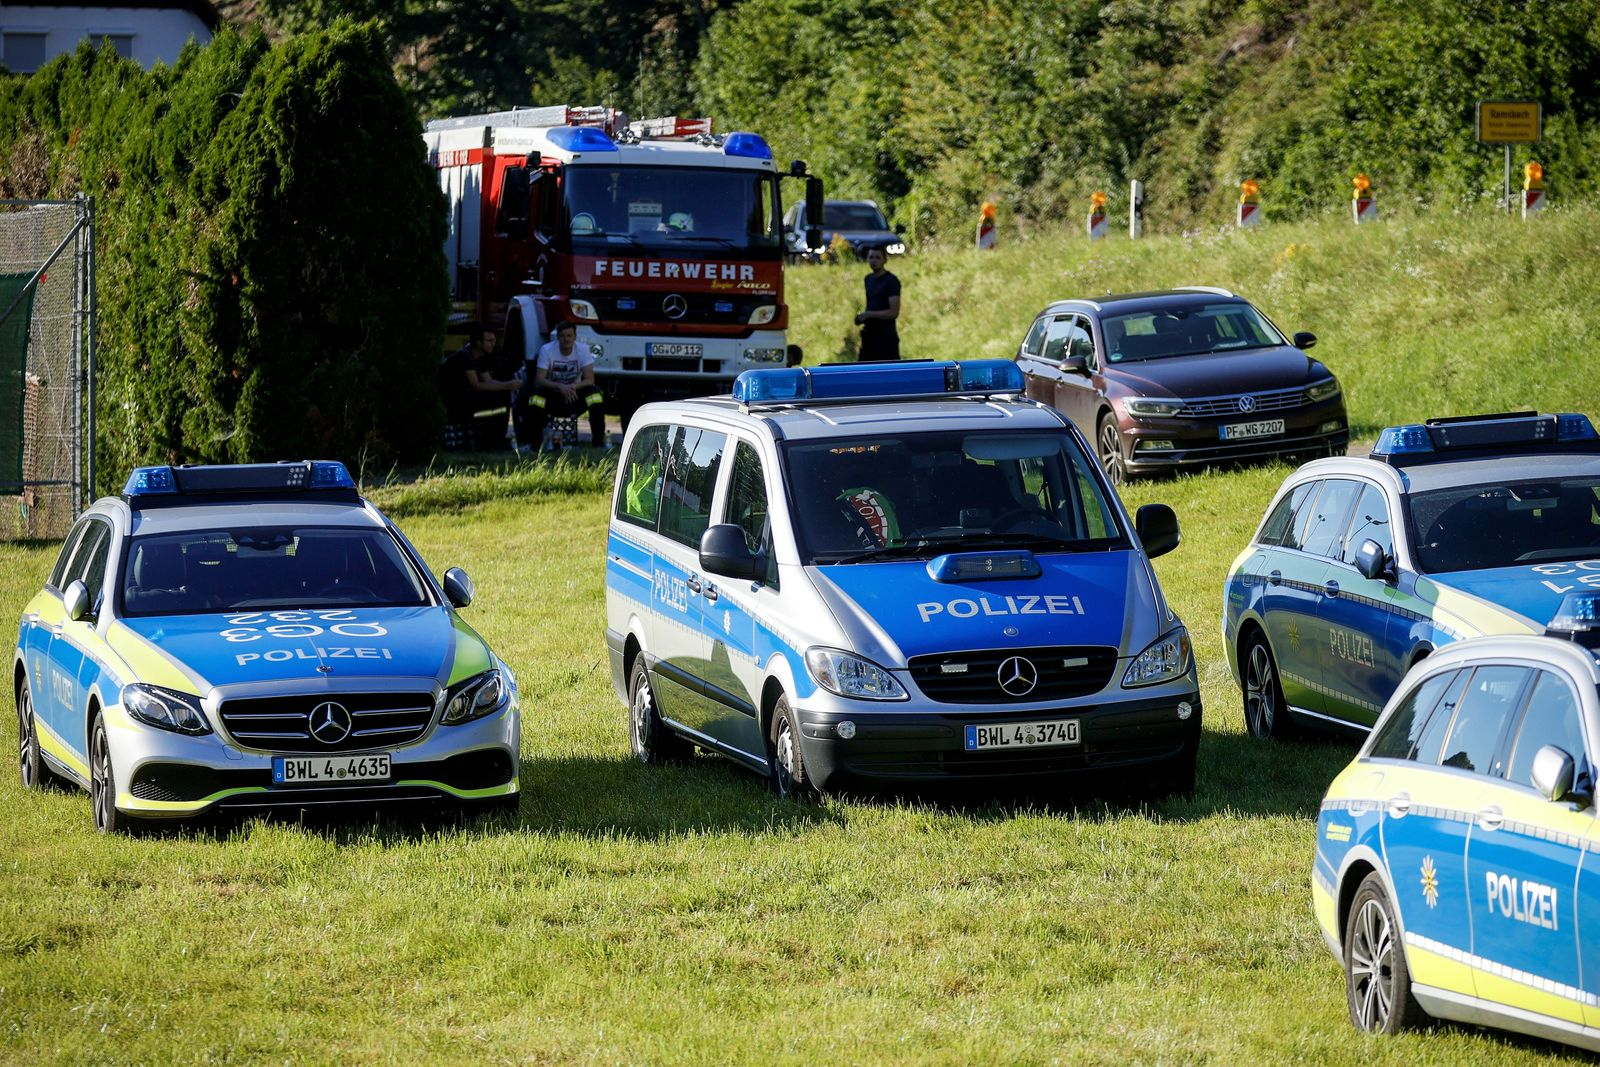 Police searches armed man in Oppenau forest area, Germany - 12 Jul 2020